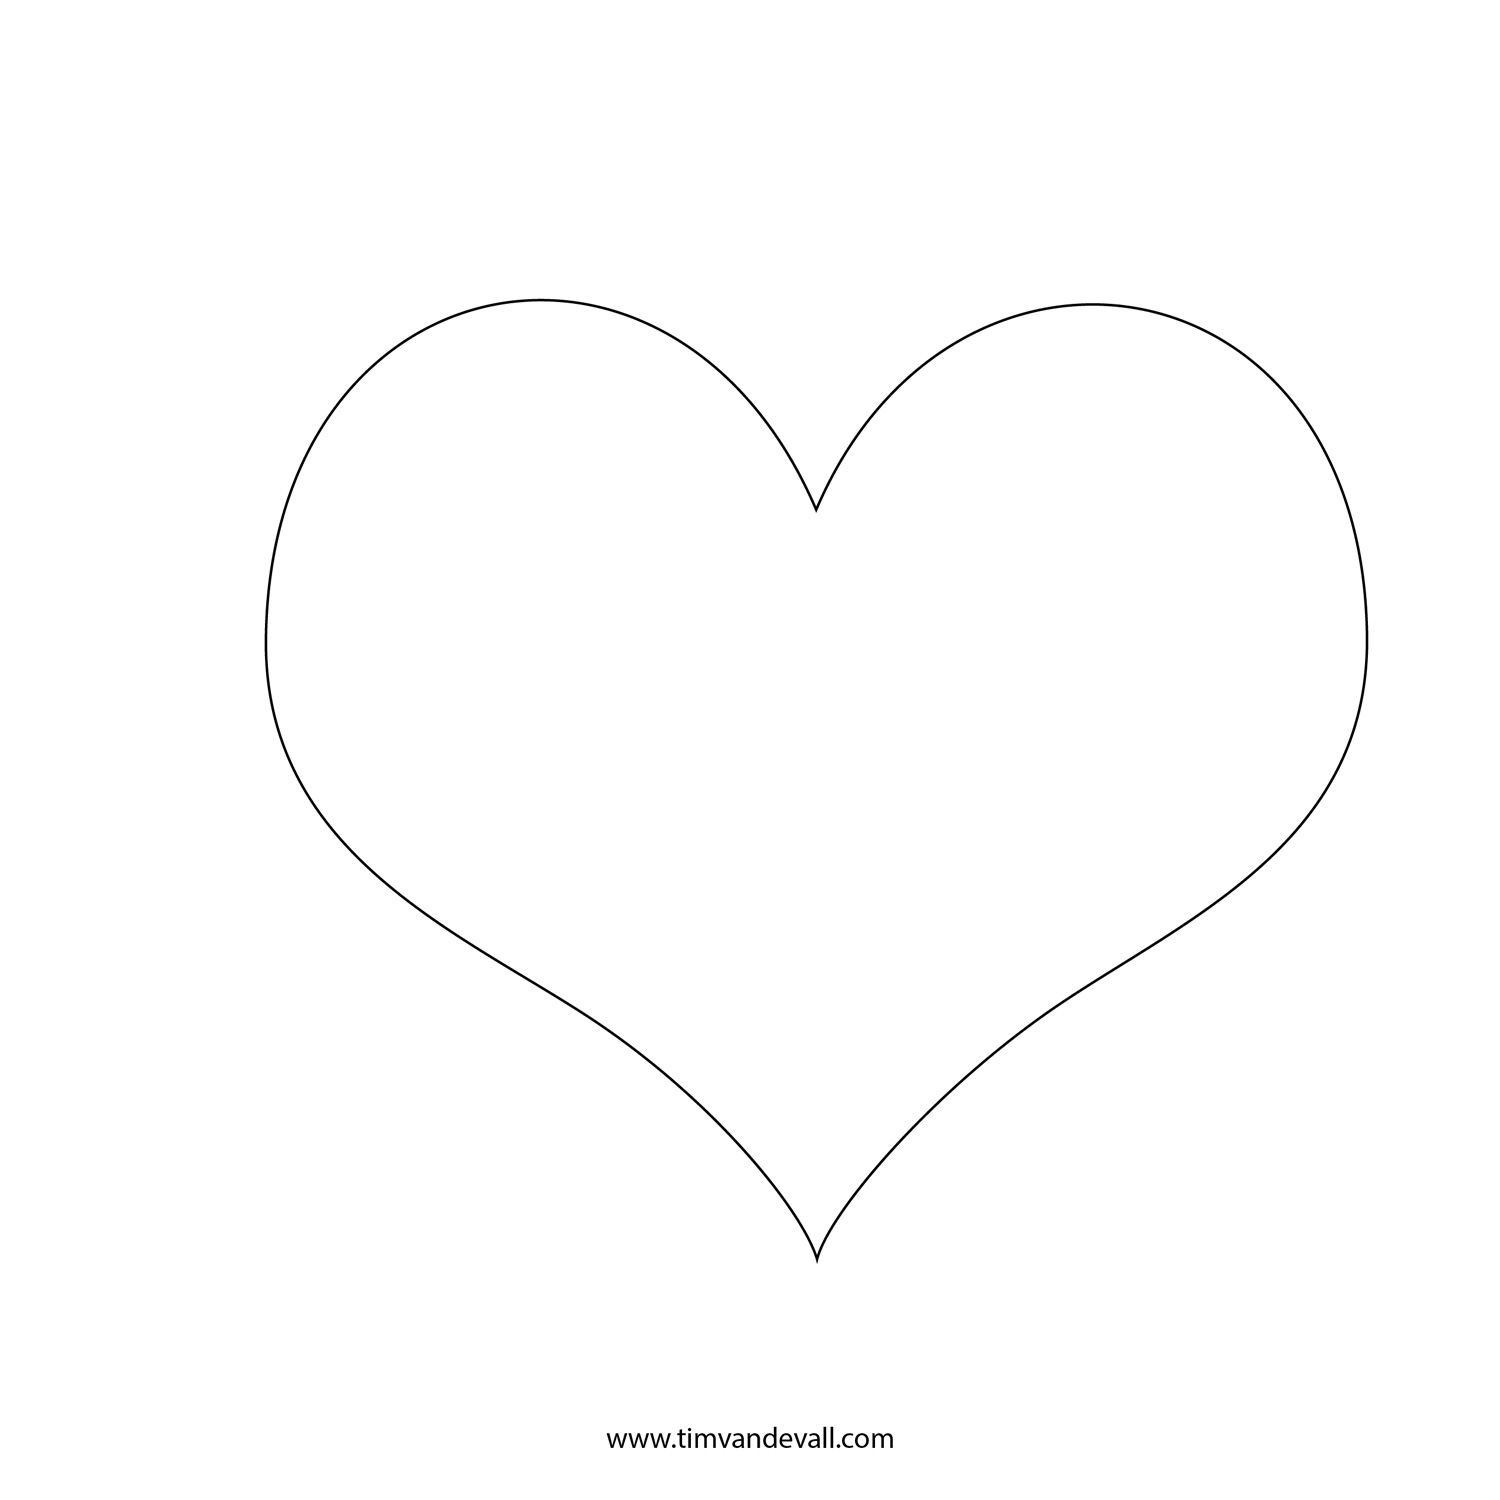 Prinable Heart Stencil| Free Heart Silhouette Template